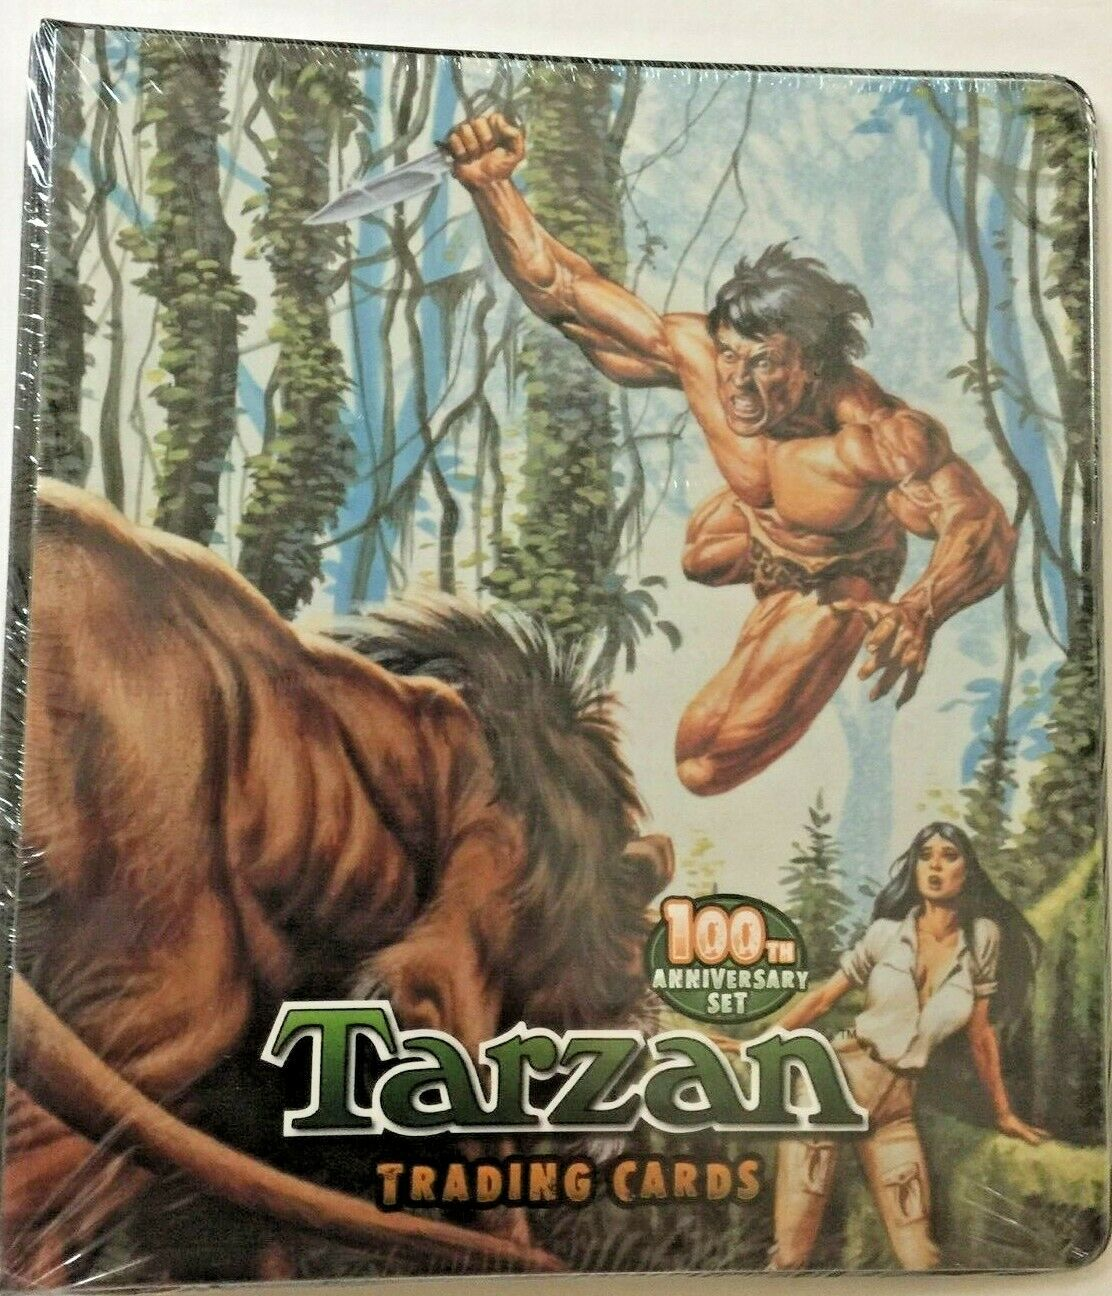 Cryptozoic Tarzan 100th Anniversary Set Binder with Exclusive Cards